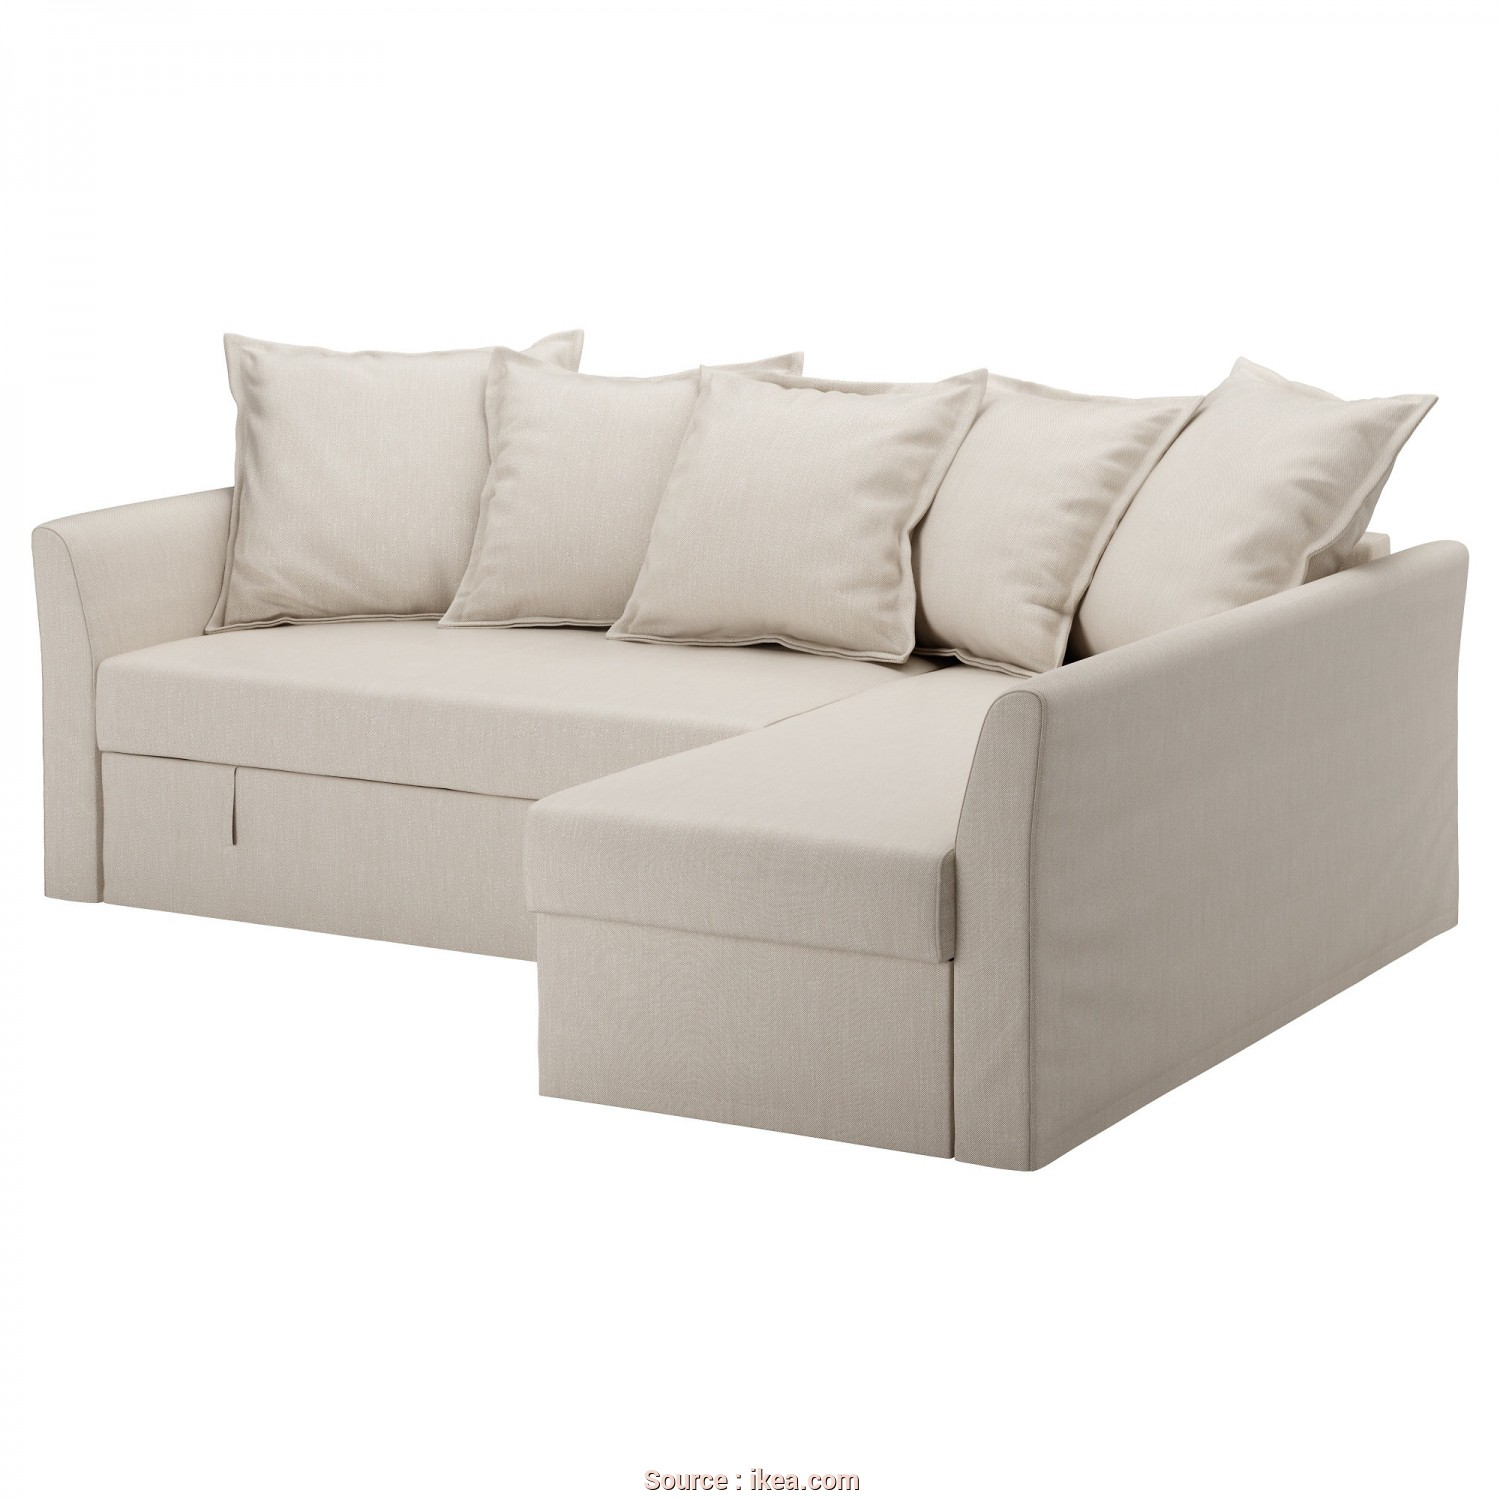 Sofa Cama Asarum De Ikea, Stupefacente IKEA HOLMSUND Corner Sofa-Bed Cover Made Of Extra Hard-Wearing Polyester With A